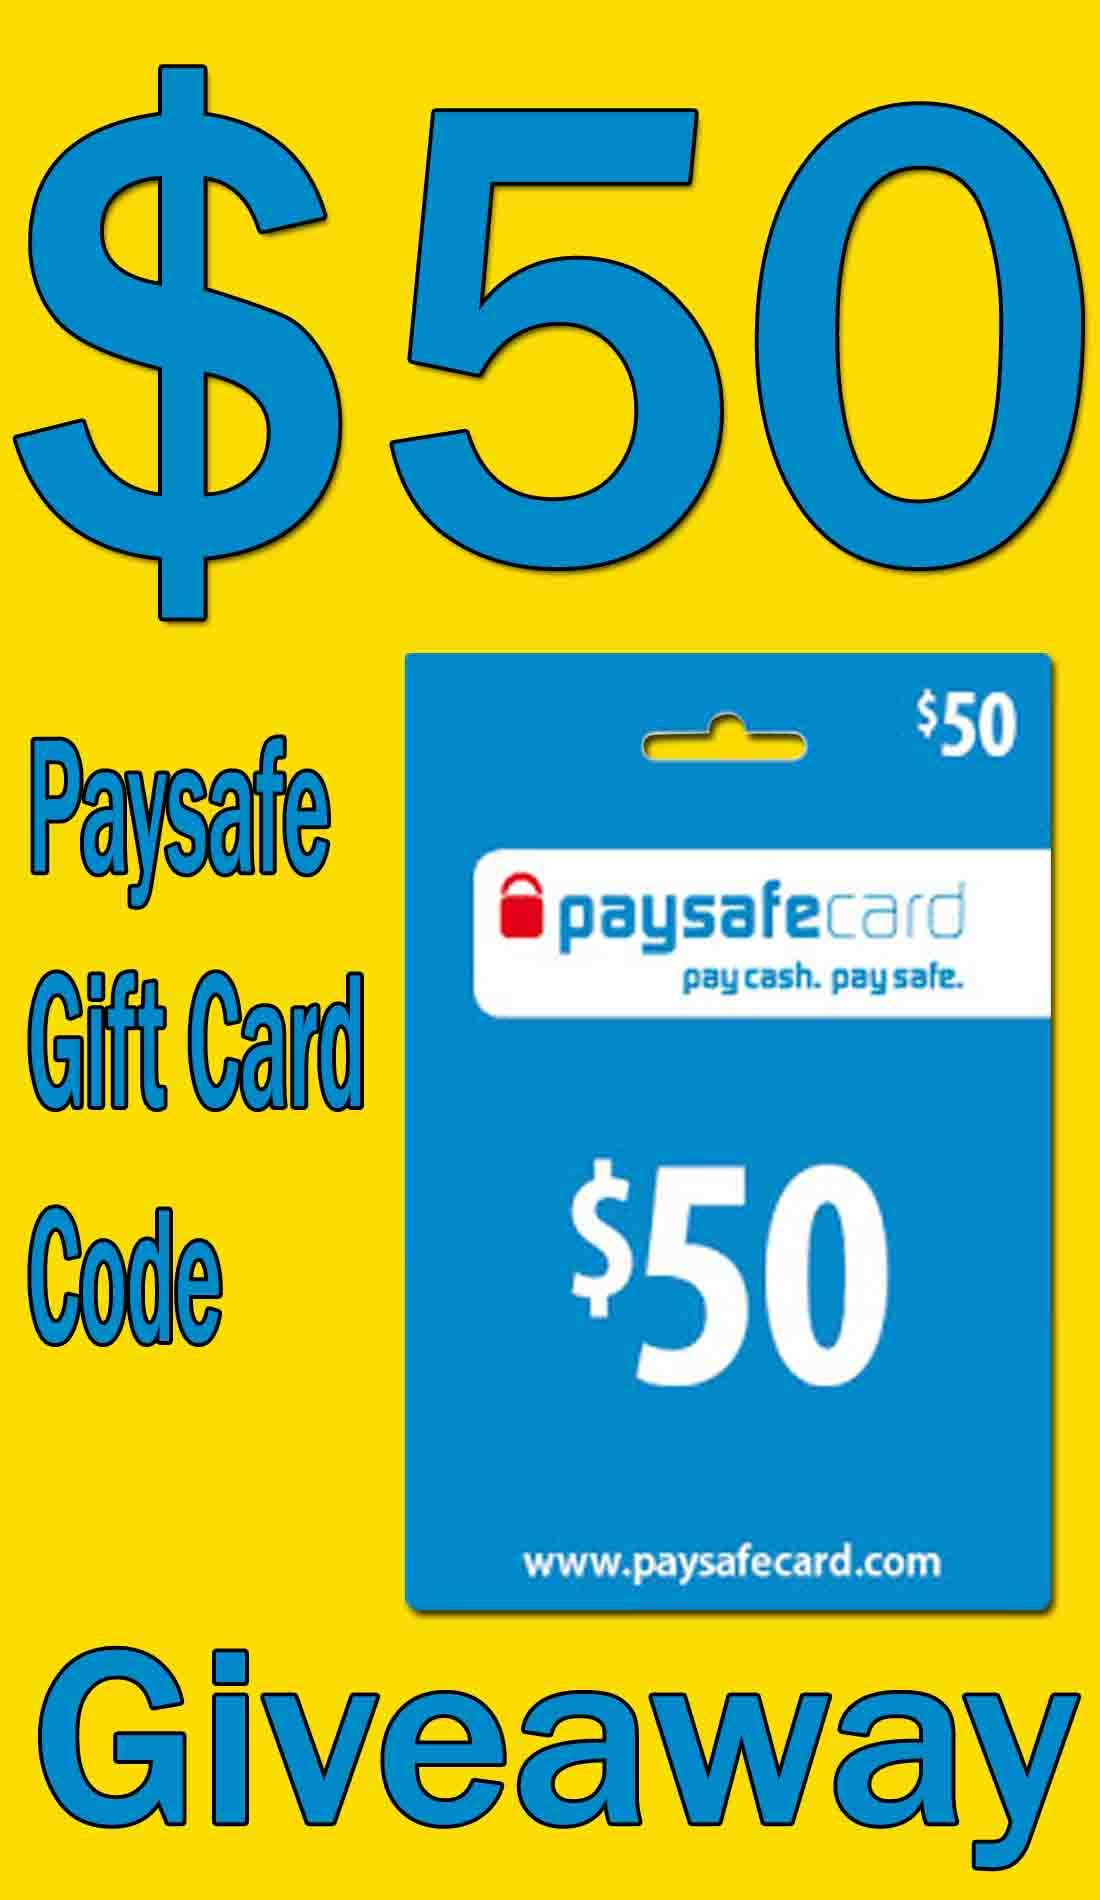 Free 50 Paysafe Gift Card Code Giveaway Cards Gift Card Gift Card Giveaway